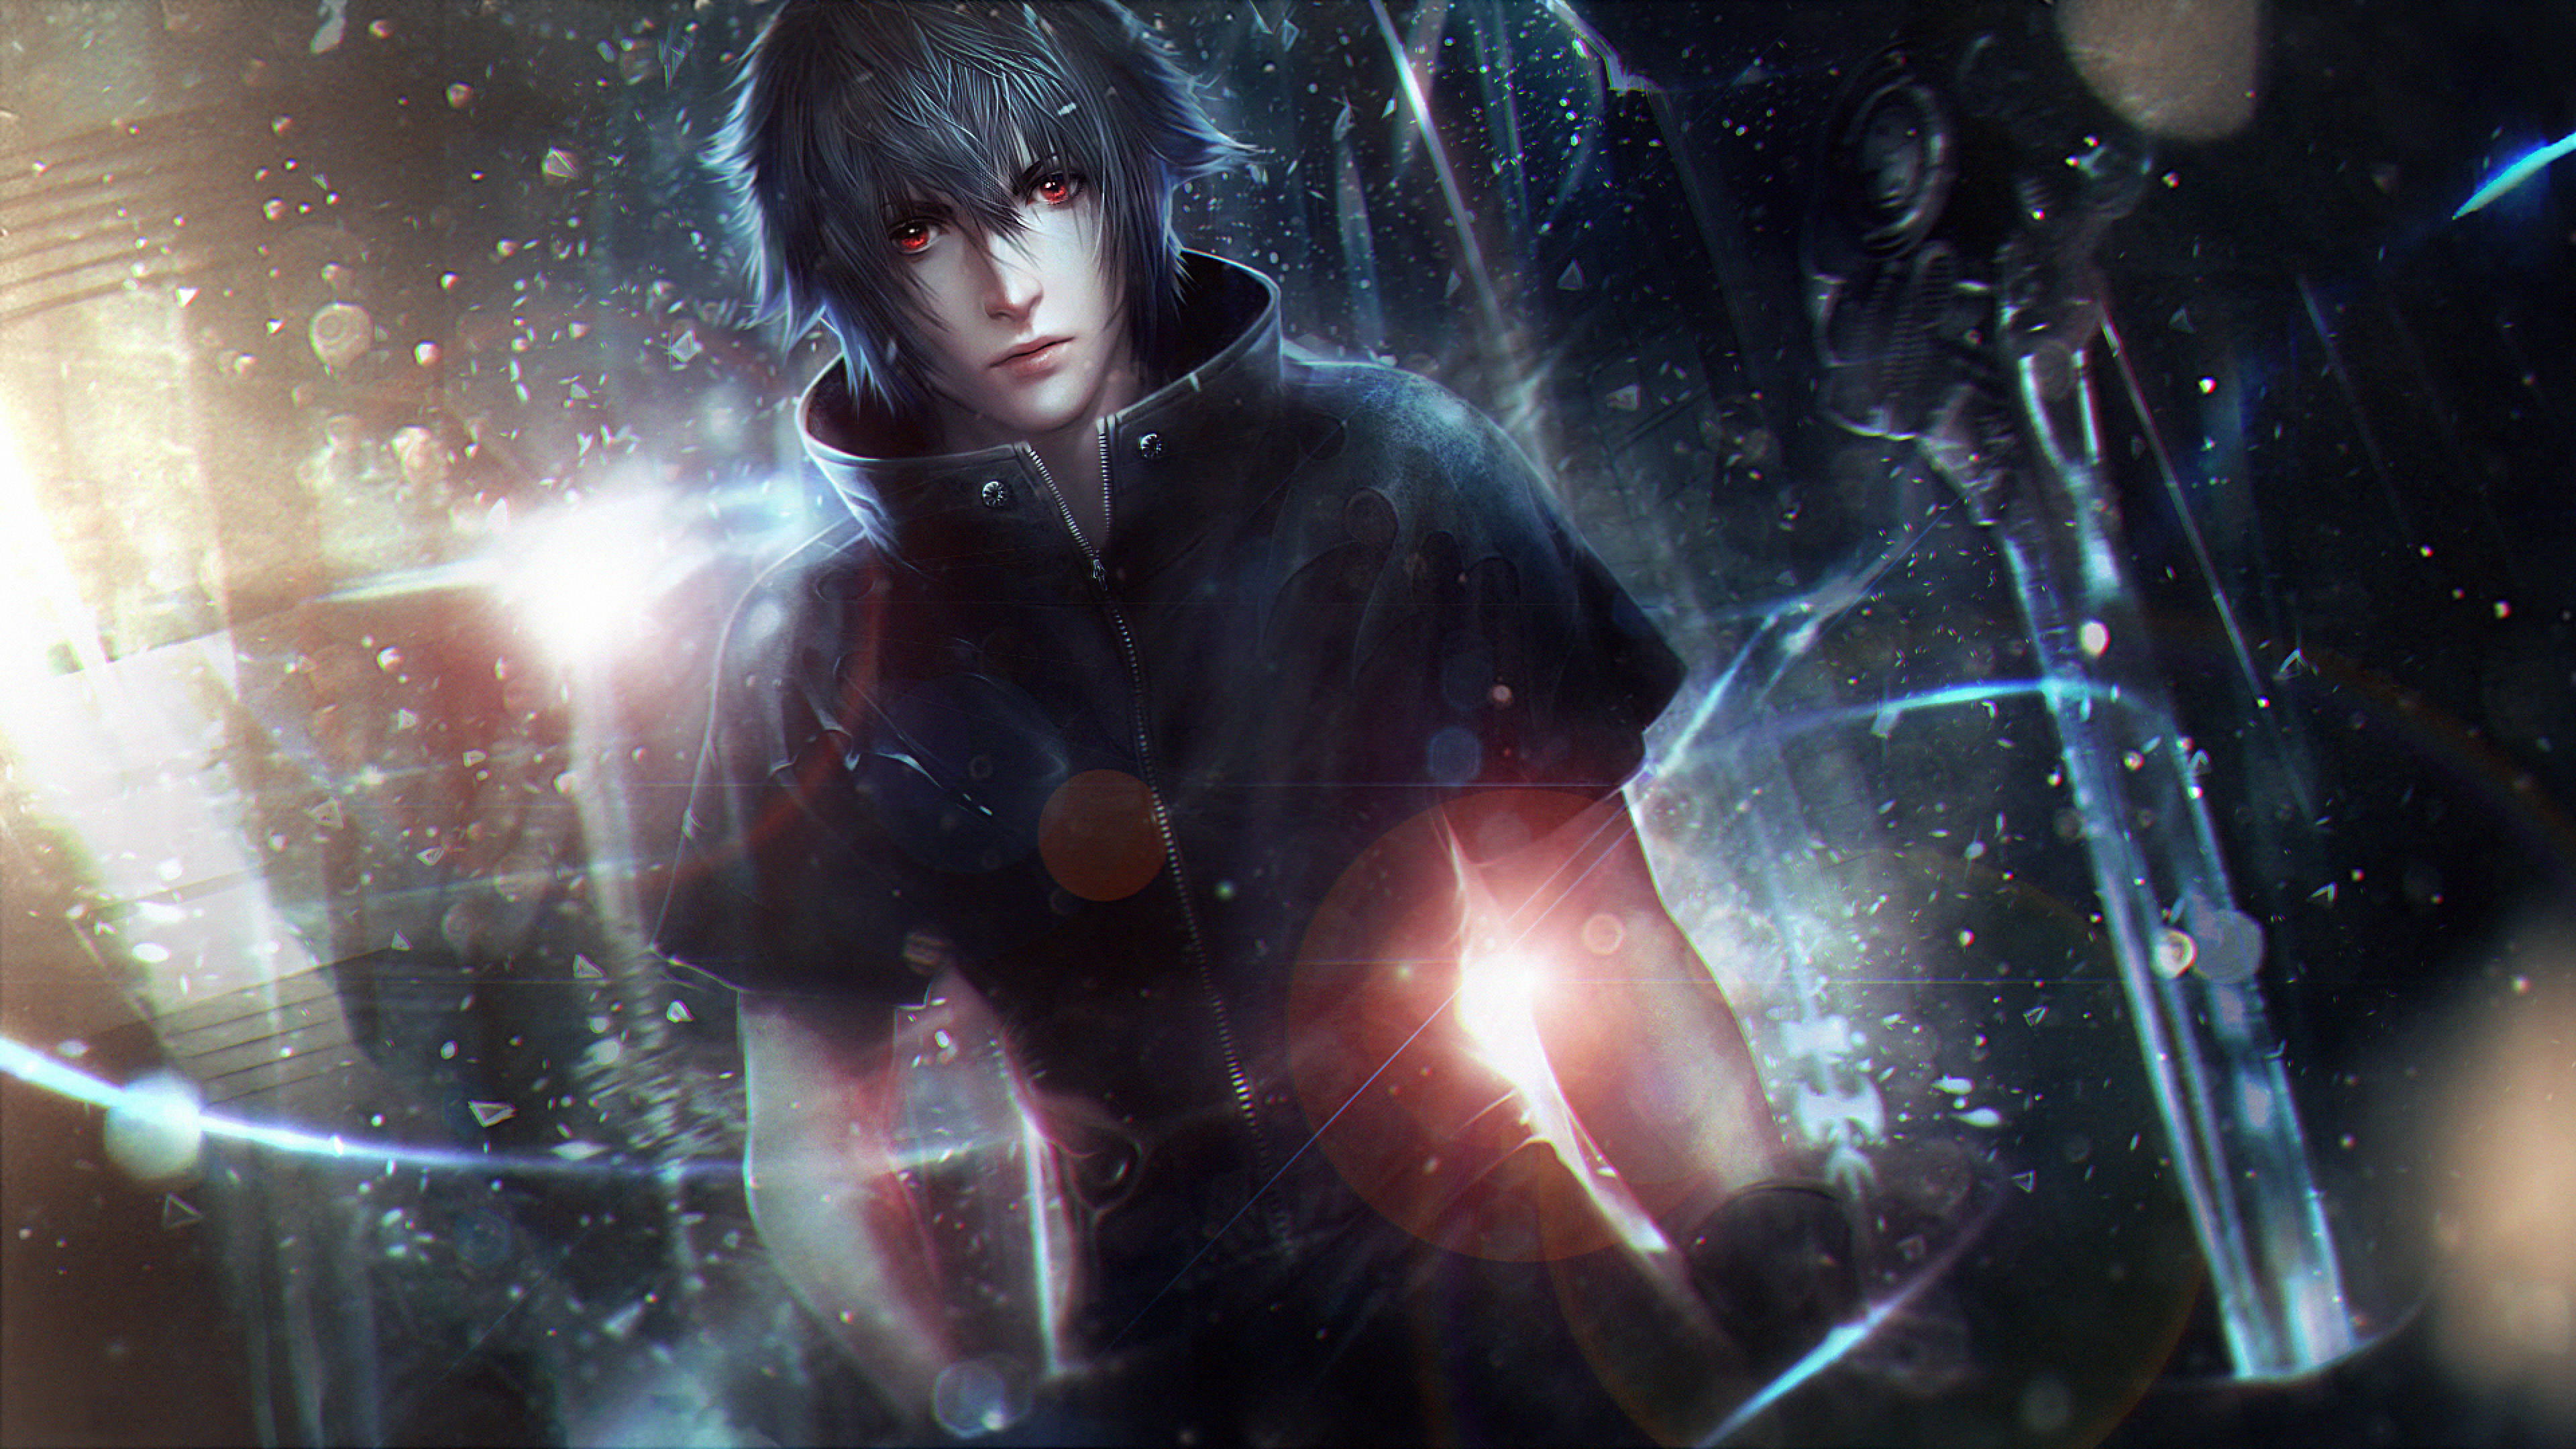 4k Final Fantasy Xv Hd Games 4k Wallpapers Images: Noctis Lucis Caelum Final Fantasy XV Artwork, HD Games, 4k